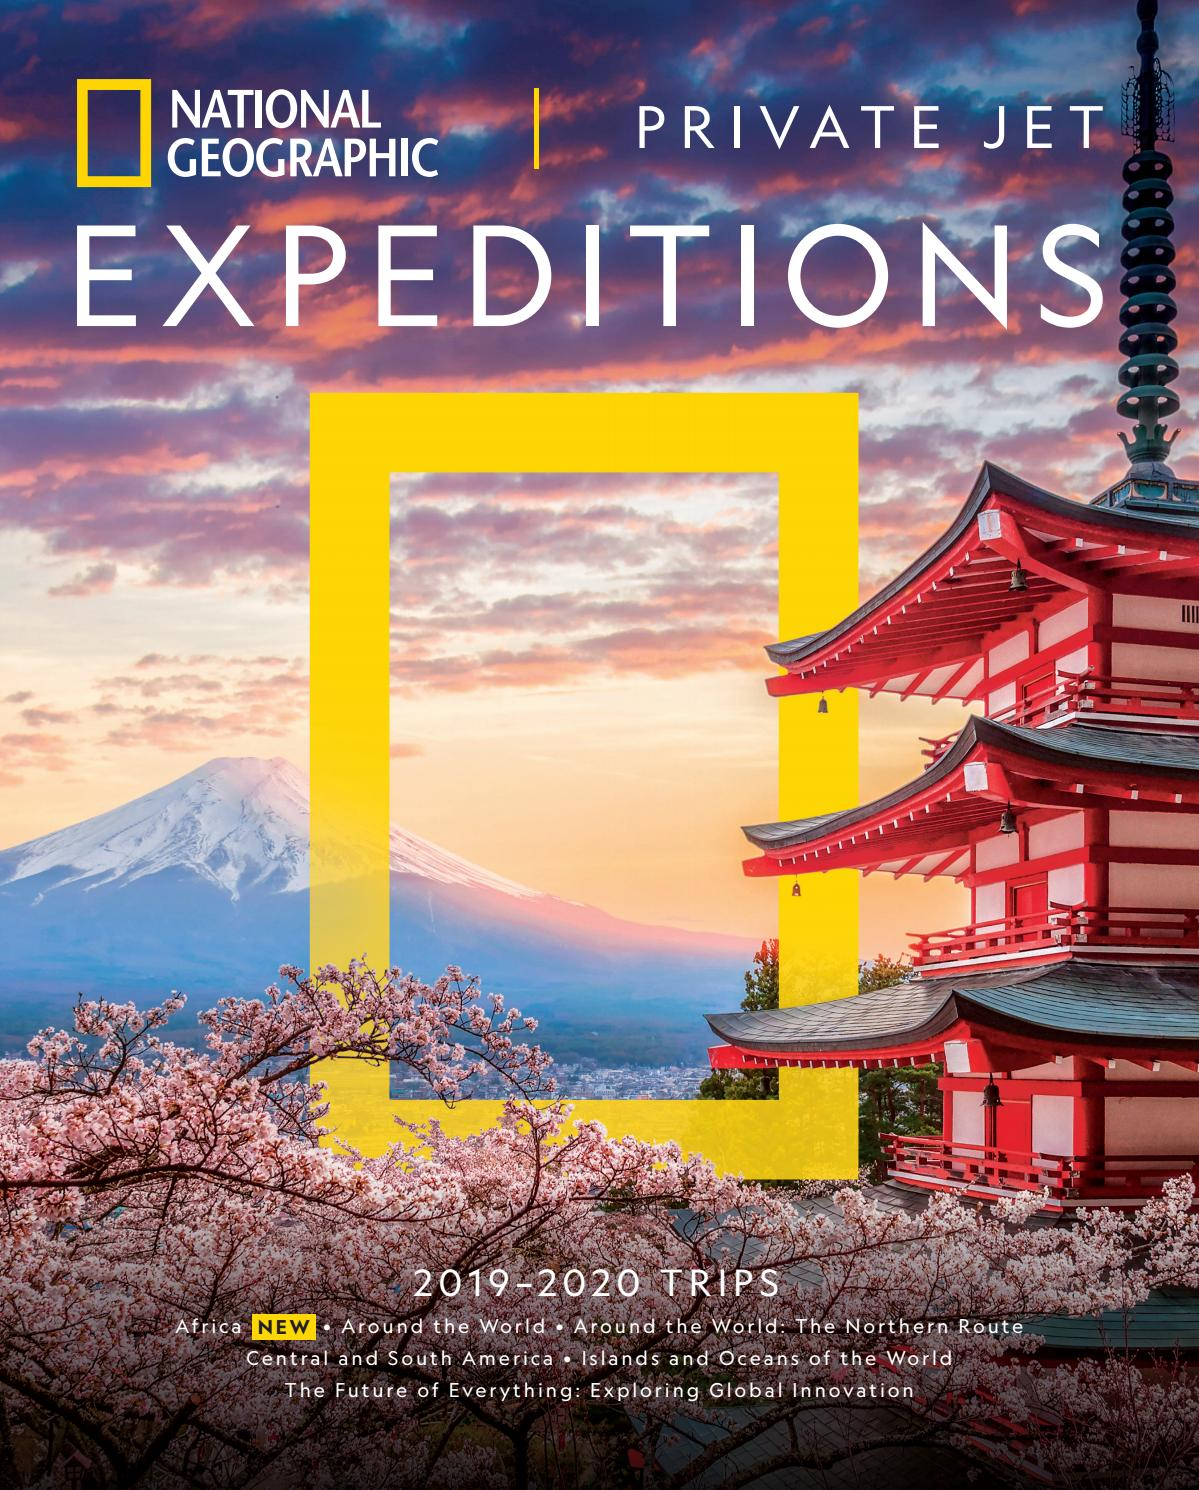 2019-2020 National Geographic Private Jet Expeditions